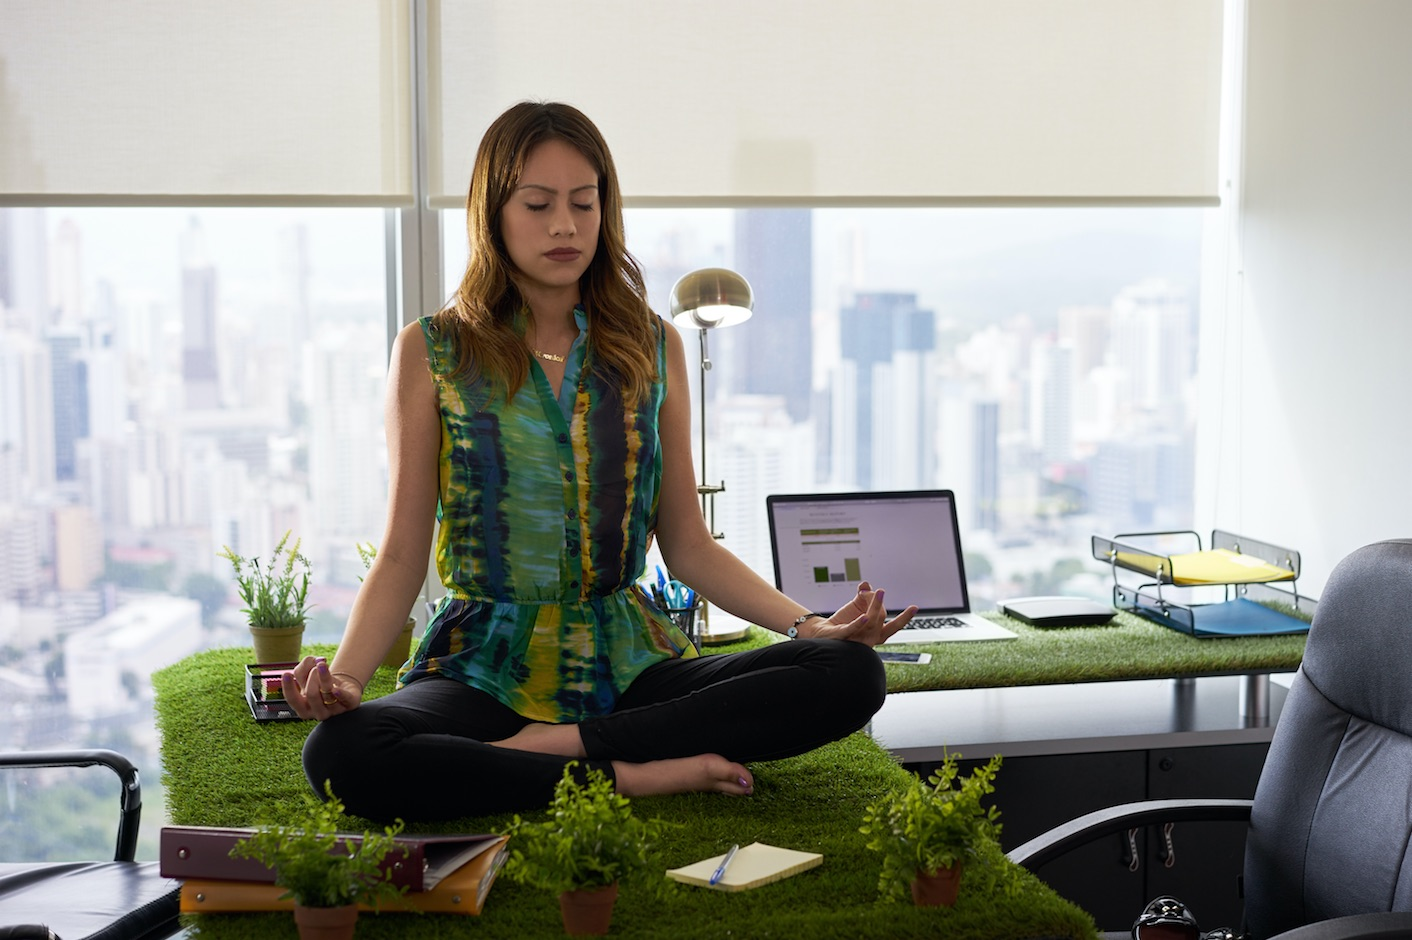 _hero-image-Do-Meditation-and-Mindfulness-Really-Work-in-the-Office